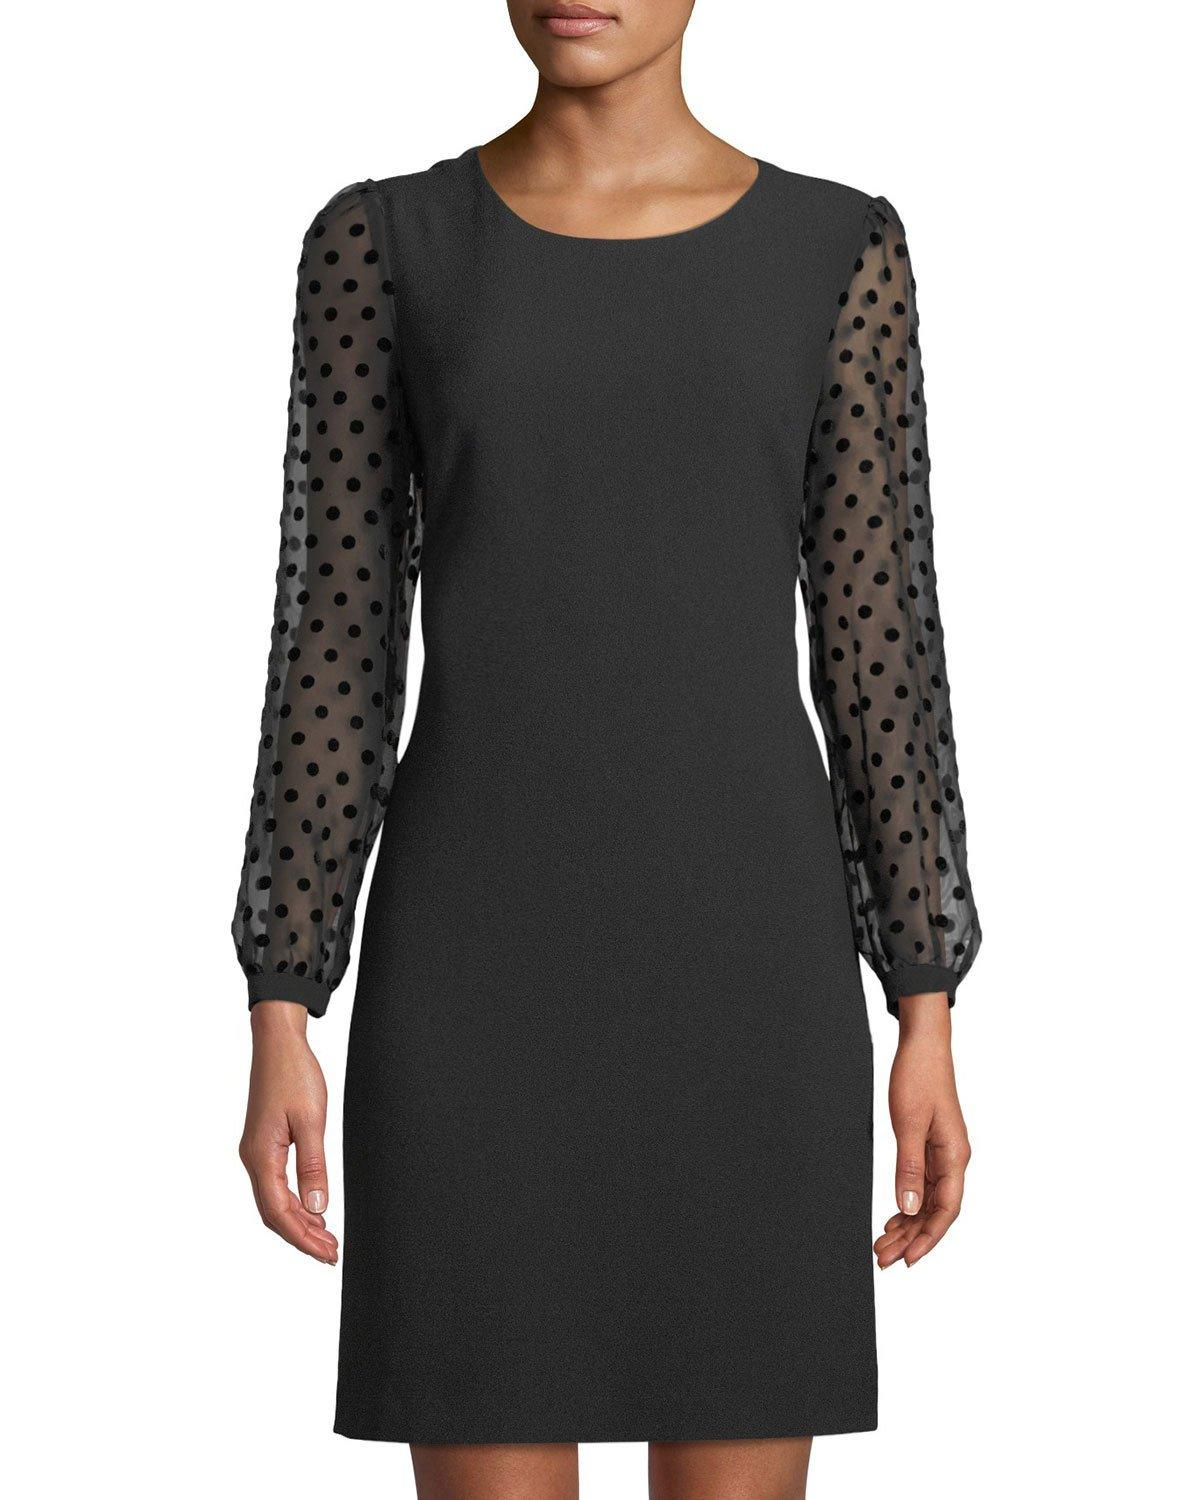 Karl Lagerfeld Polka-dot Burnout Sleeve Shift Dress In Black